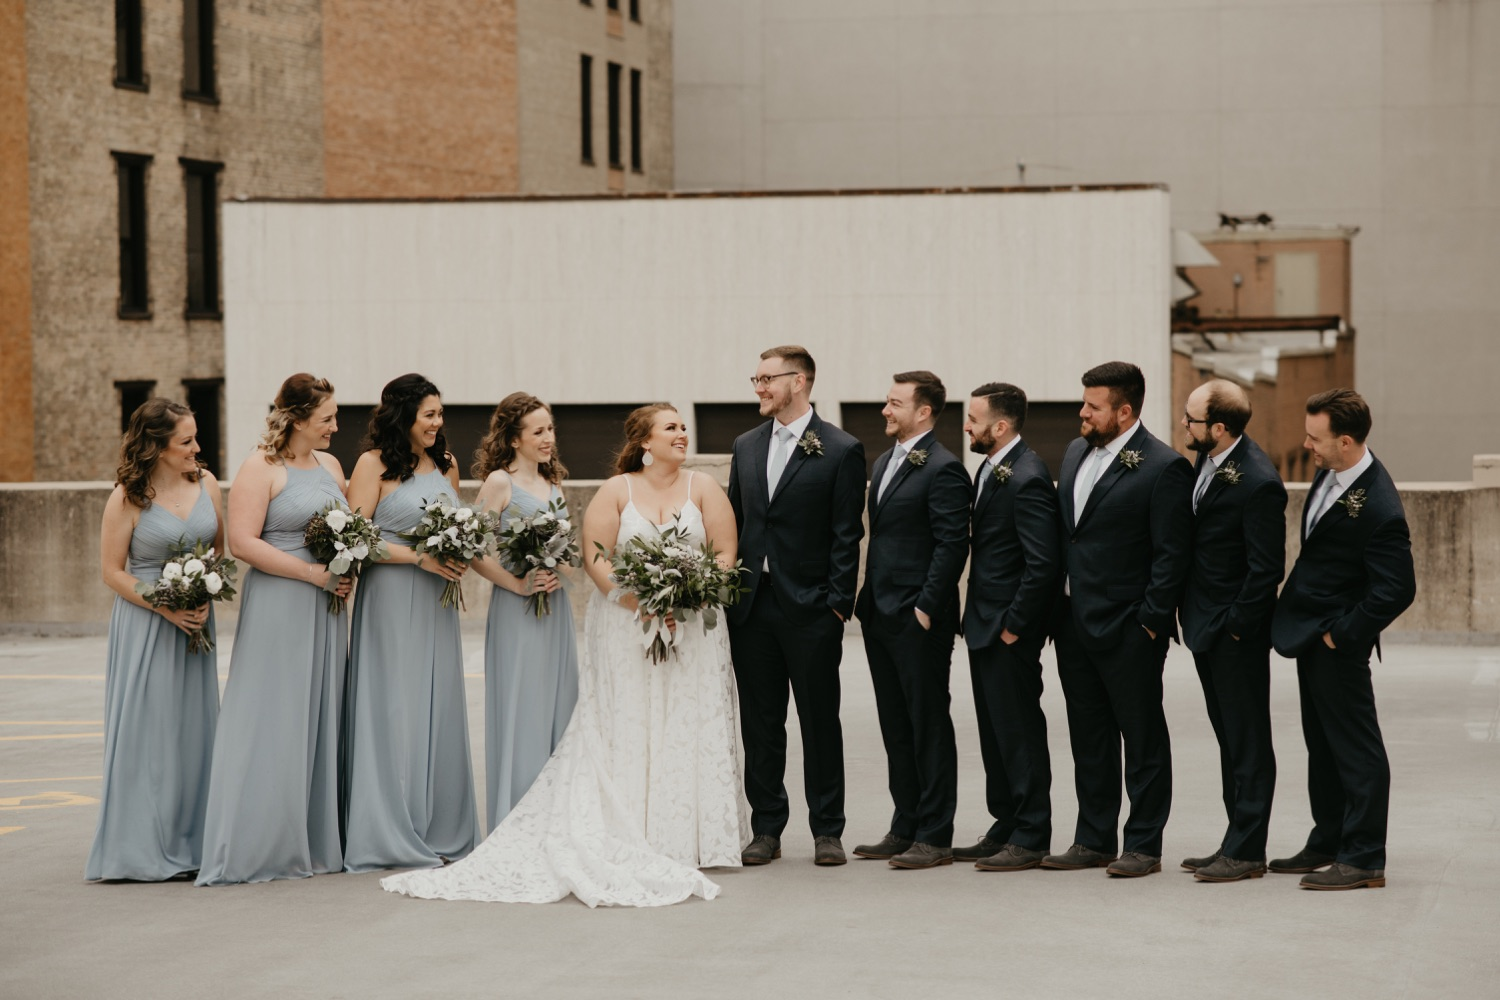 dusty blue and navy wedding party colors lumber exchange minneapolis